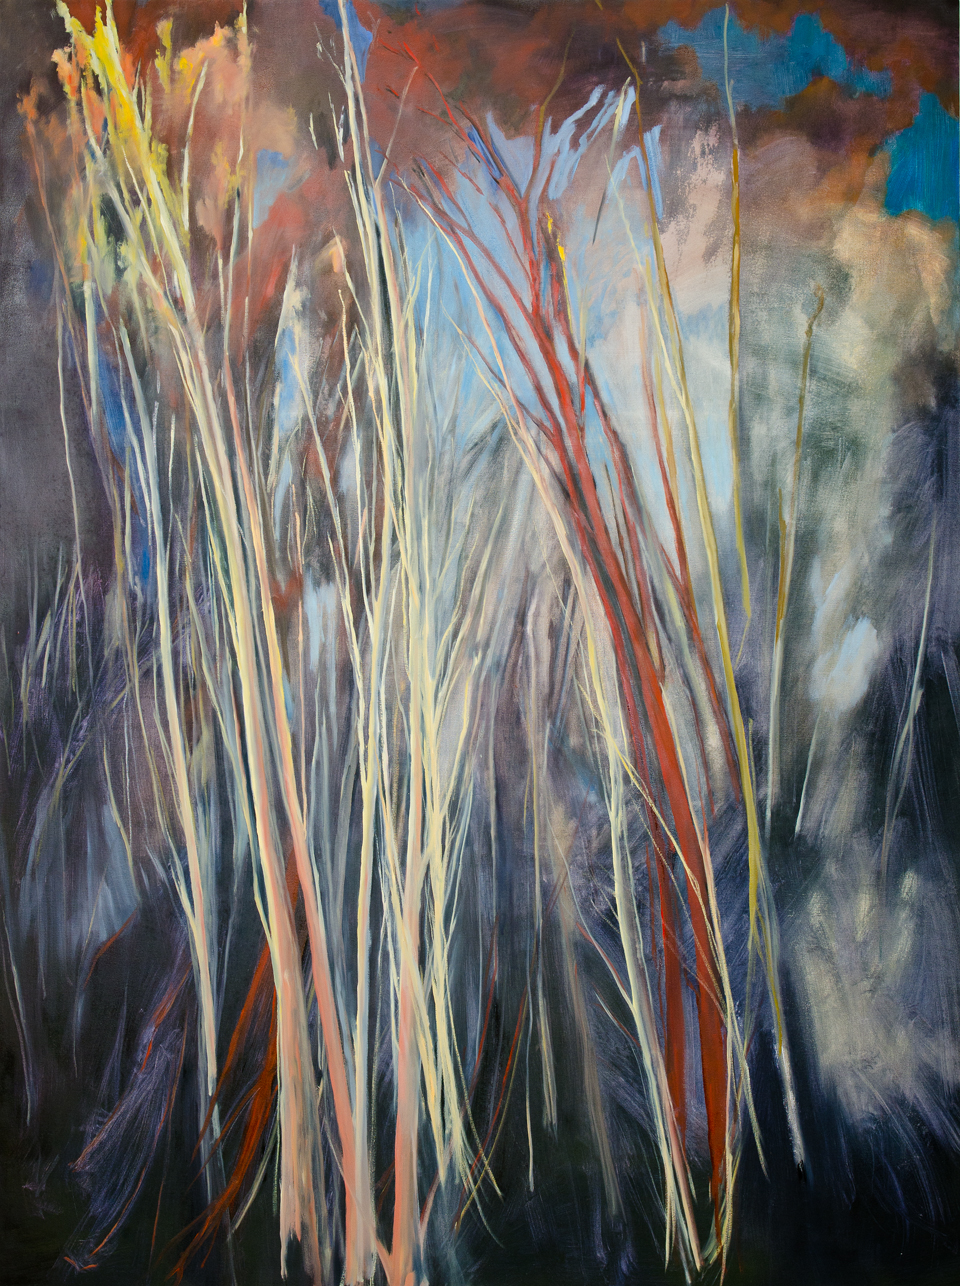 Scuro, 2011, Oil on canvas, 96 x 72 inches (Private Collection)